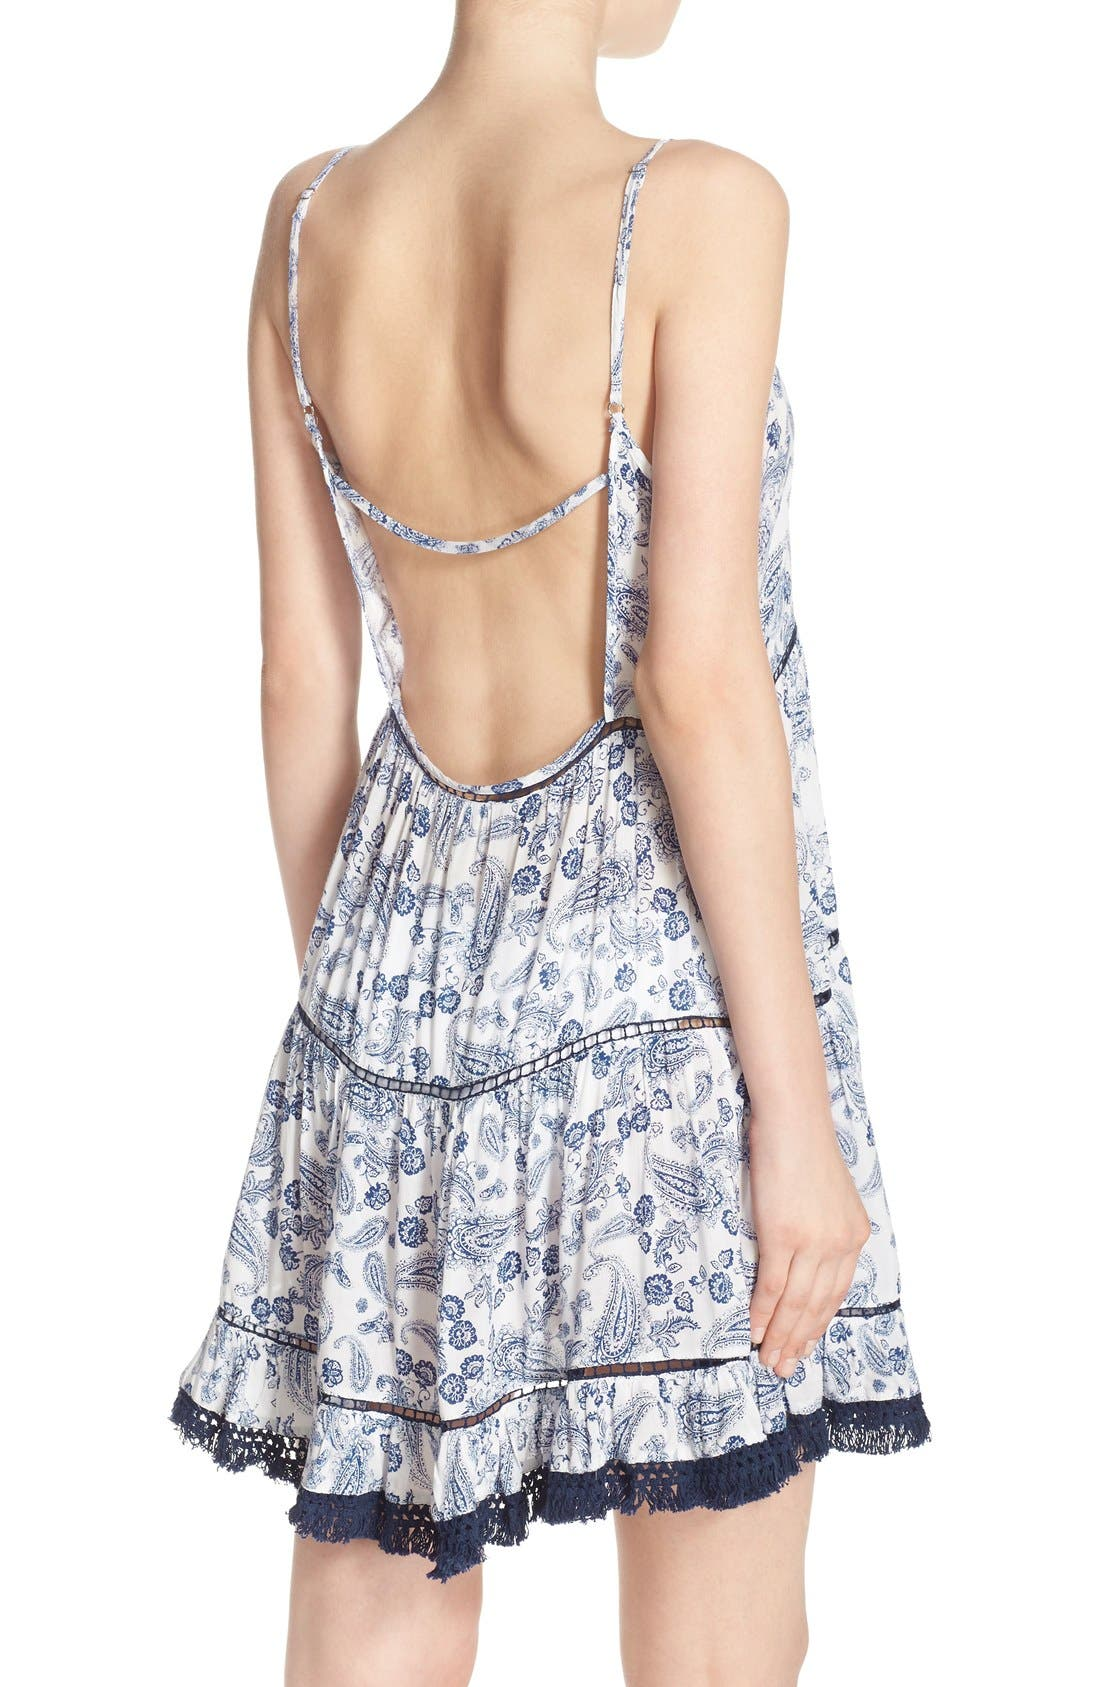 Main Image - Surf Gypsy Backless Babydoll Cover-Up Dress